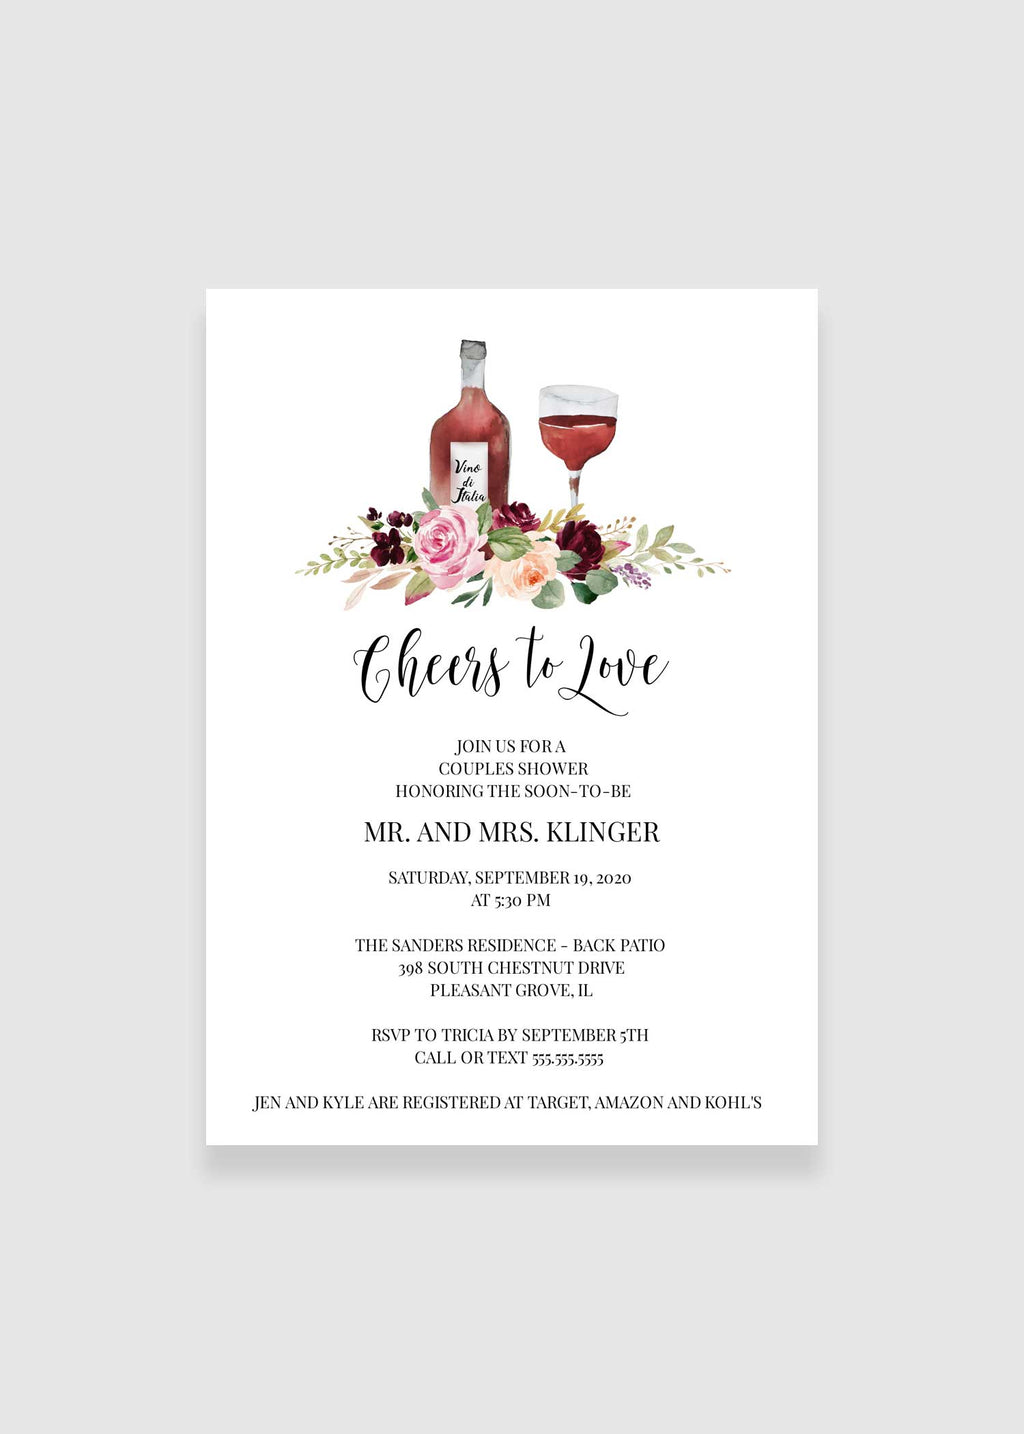 Cheers to Love Couples Wedding Shower Invitation - Bridal Shower Invitation